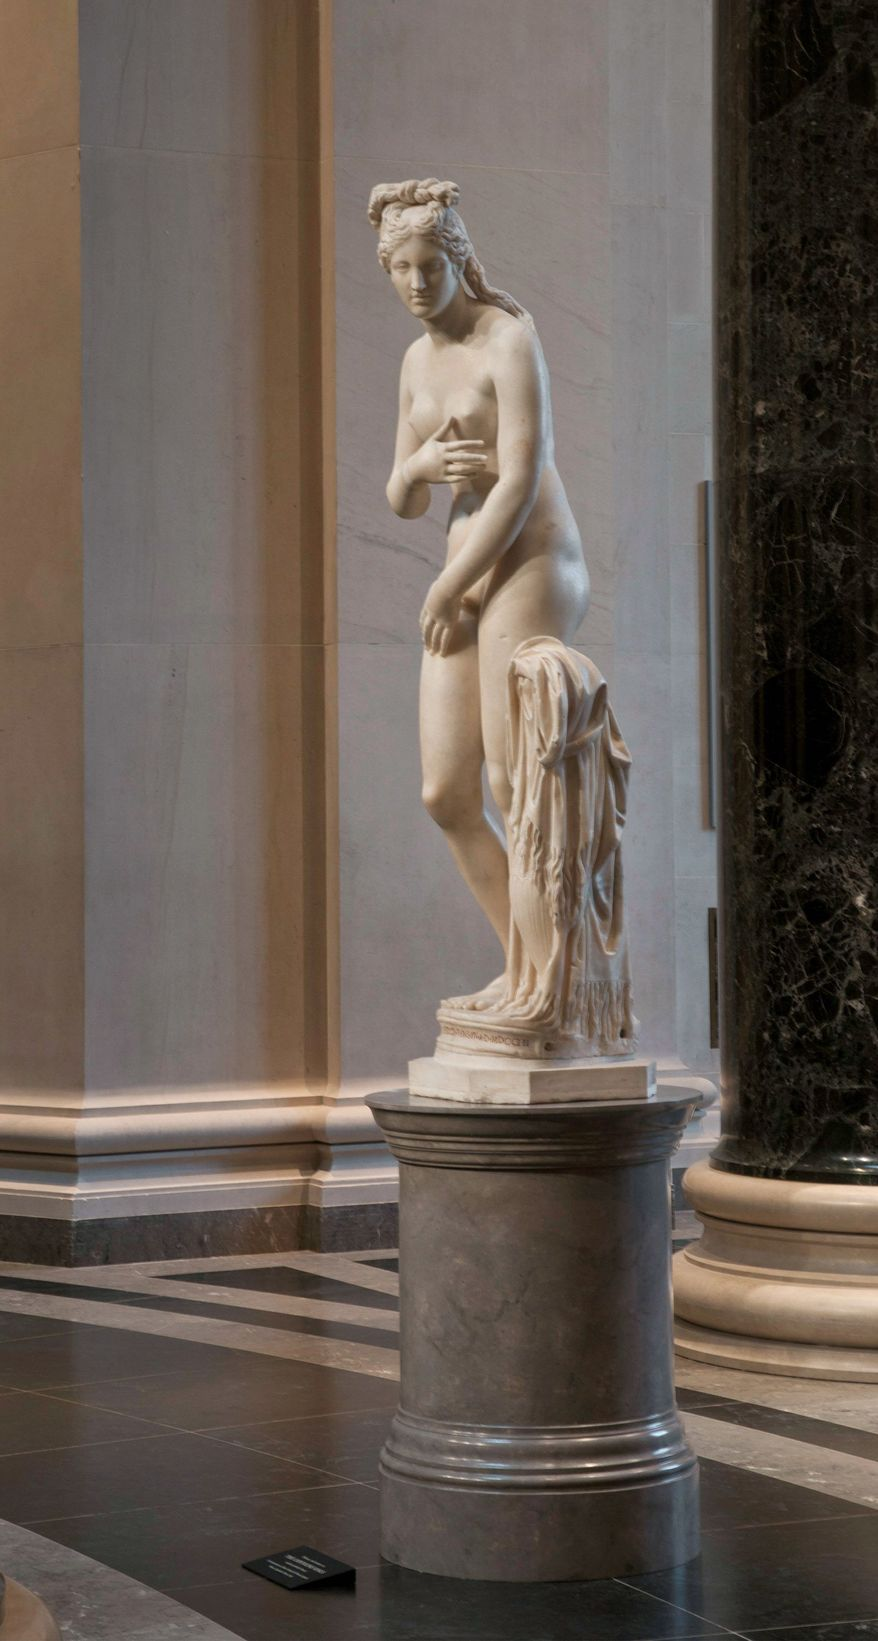 The 6-foot-tall Capitoline Venus, installed in the Rotunda of the West Building of the National Gallery of Art in Washington, will be on display until Sept. 5. The statue was excavated from the buried ruins of an ancient building in Rome in the 1670s and given to the Capitoline Museum by Pope Benedict XIV in 1752. (Photograph by Rob Shelley)